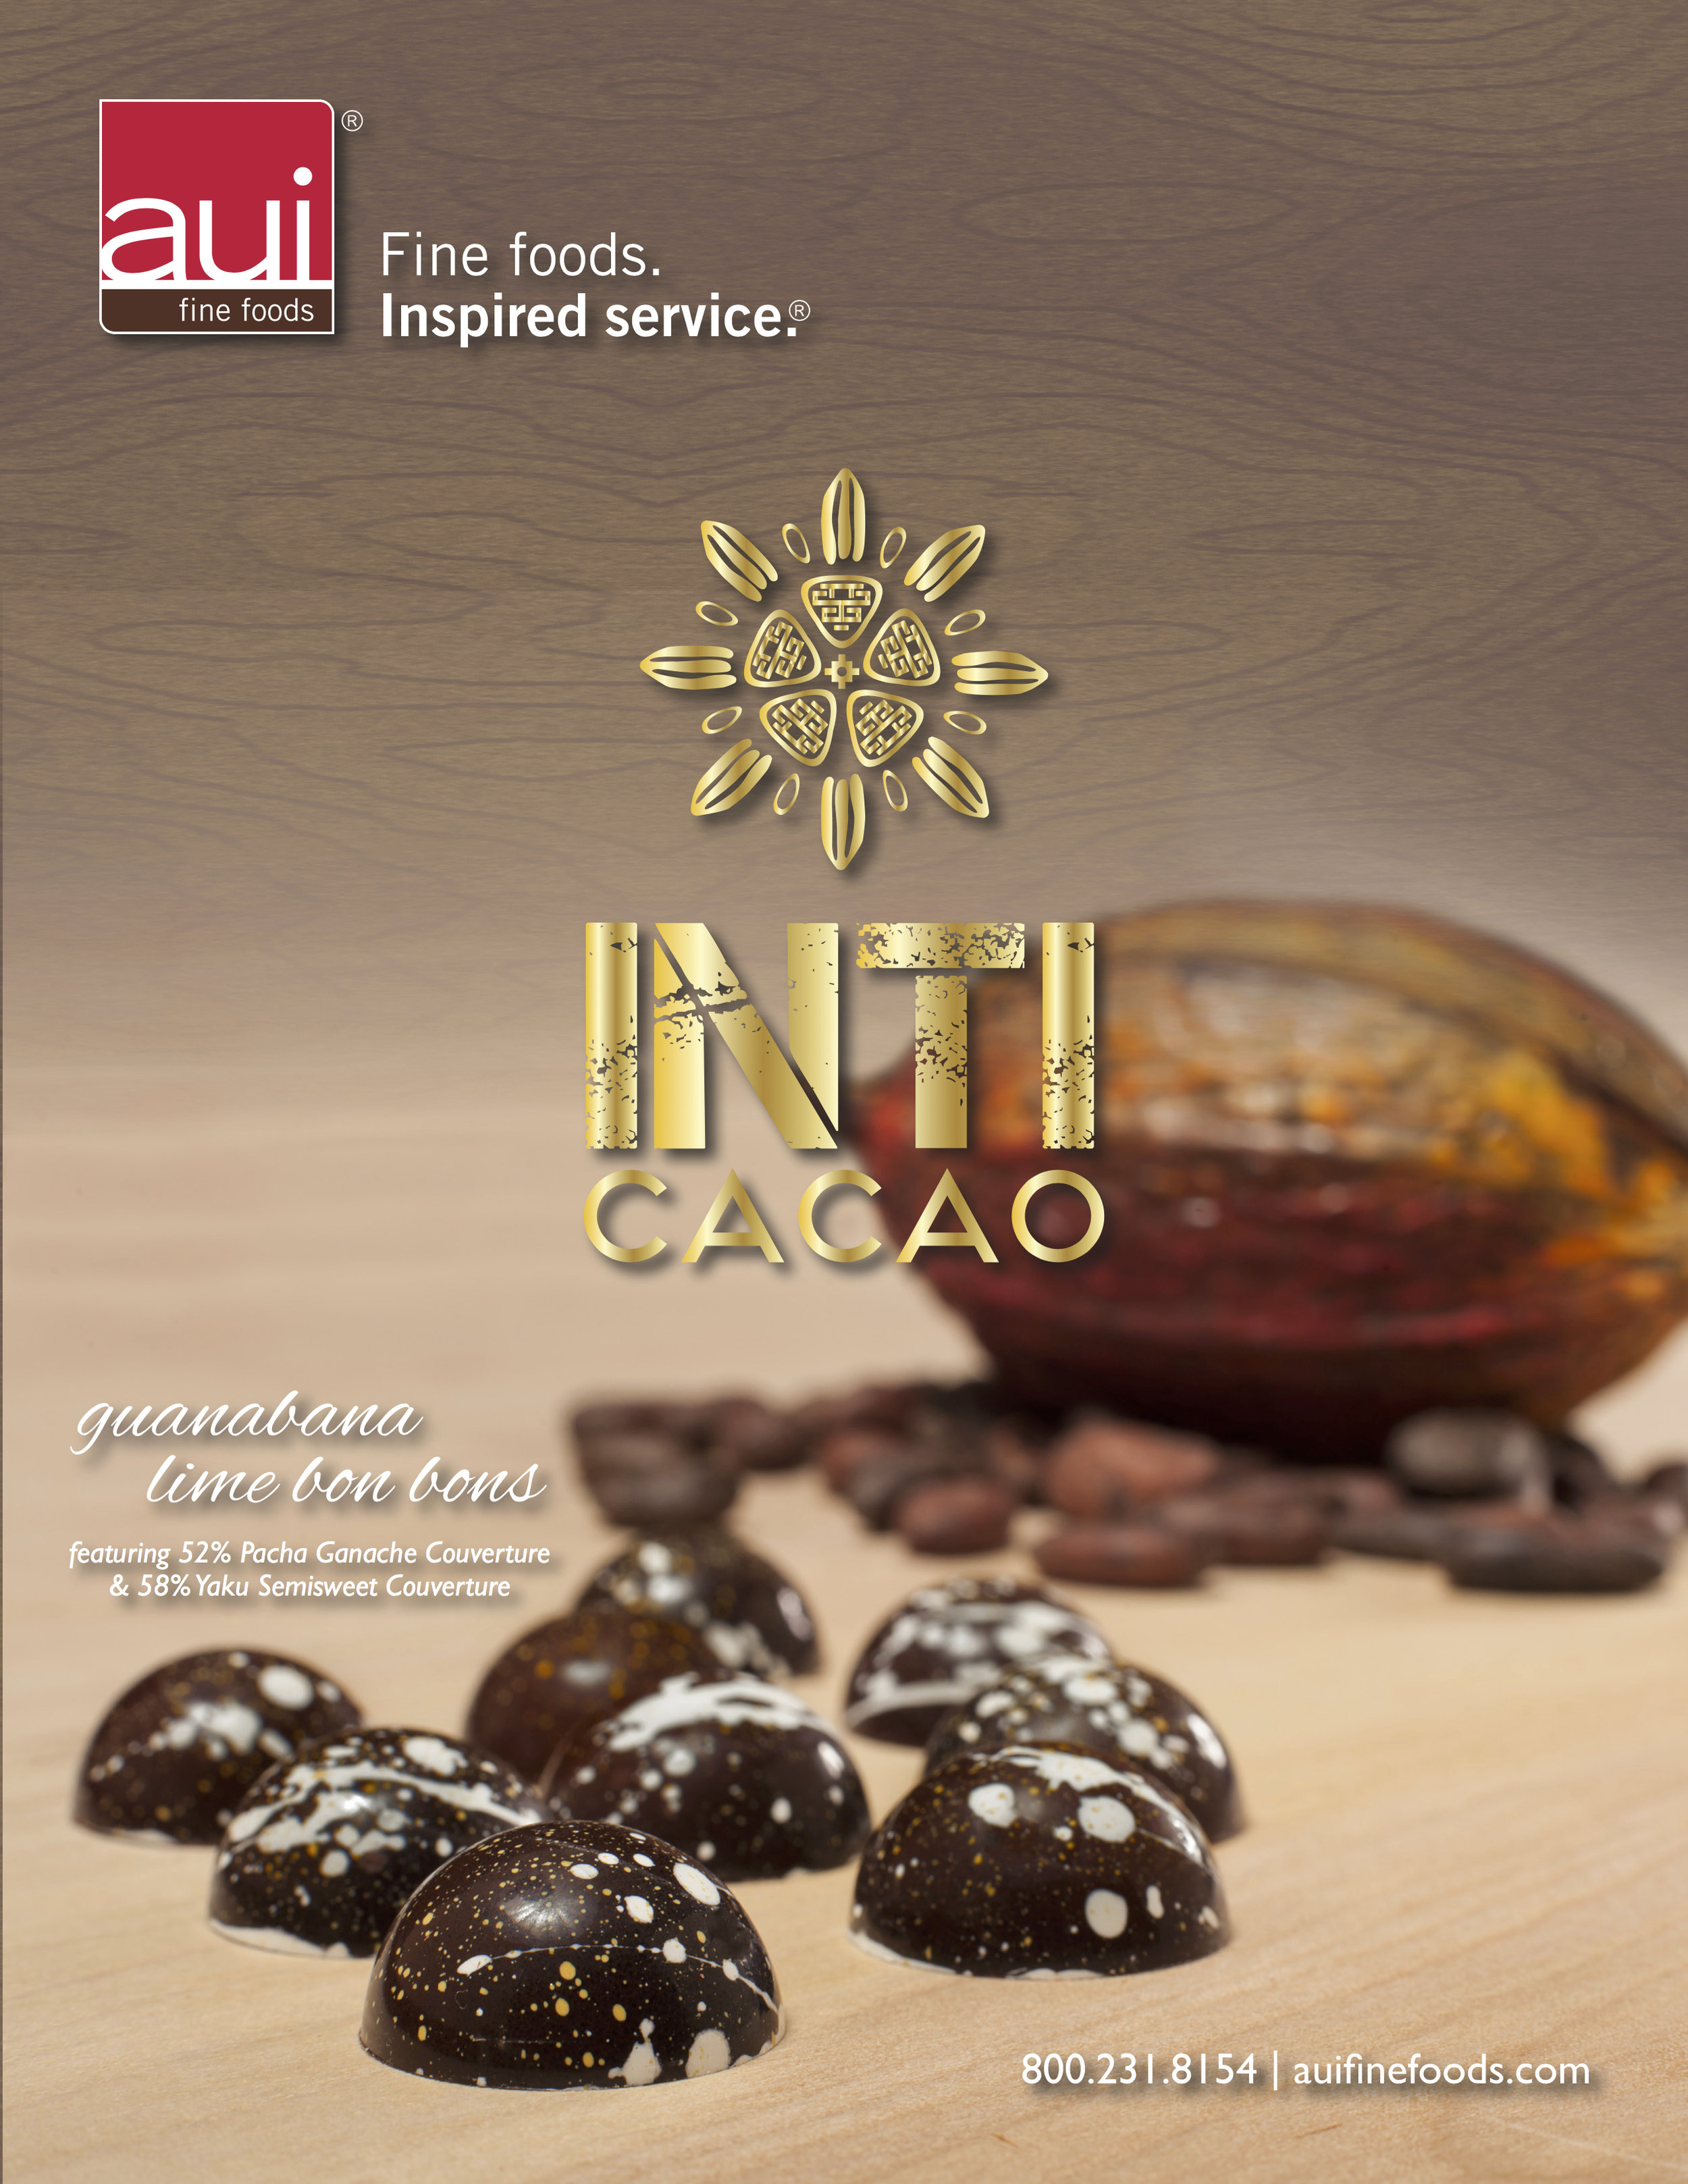 Inti_Cacao_Flyer_FINAL.jpg